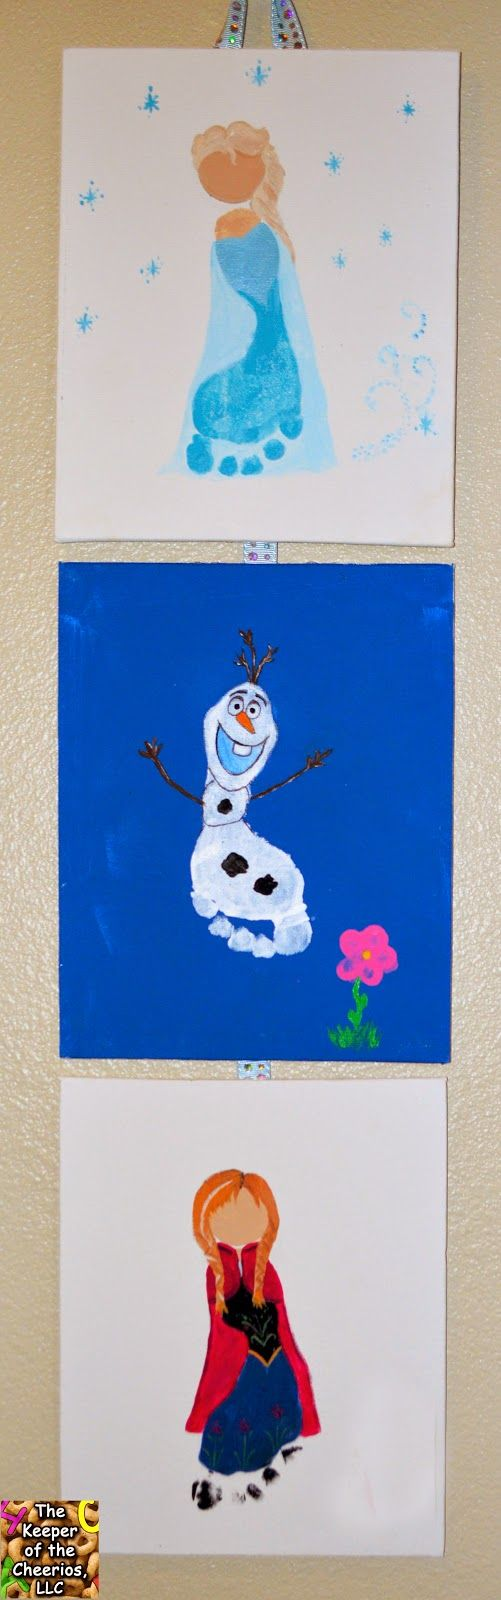 16 Disney Inspired Footprint Crafts | The Keeper of the Cheerios